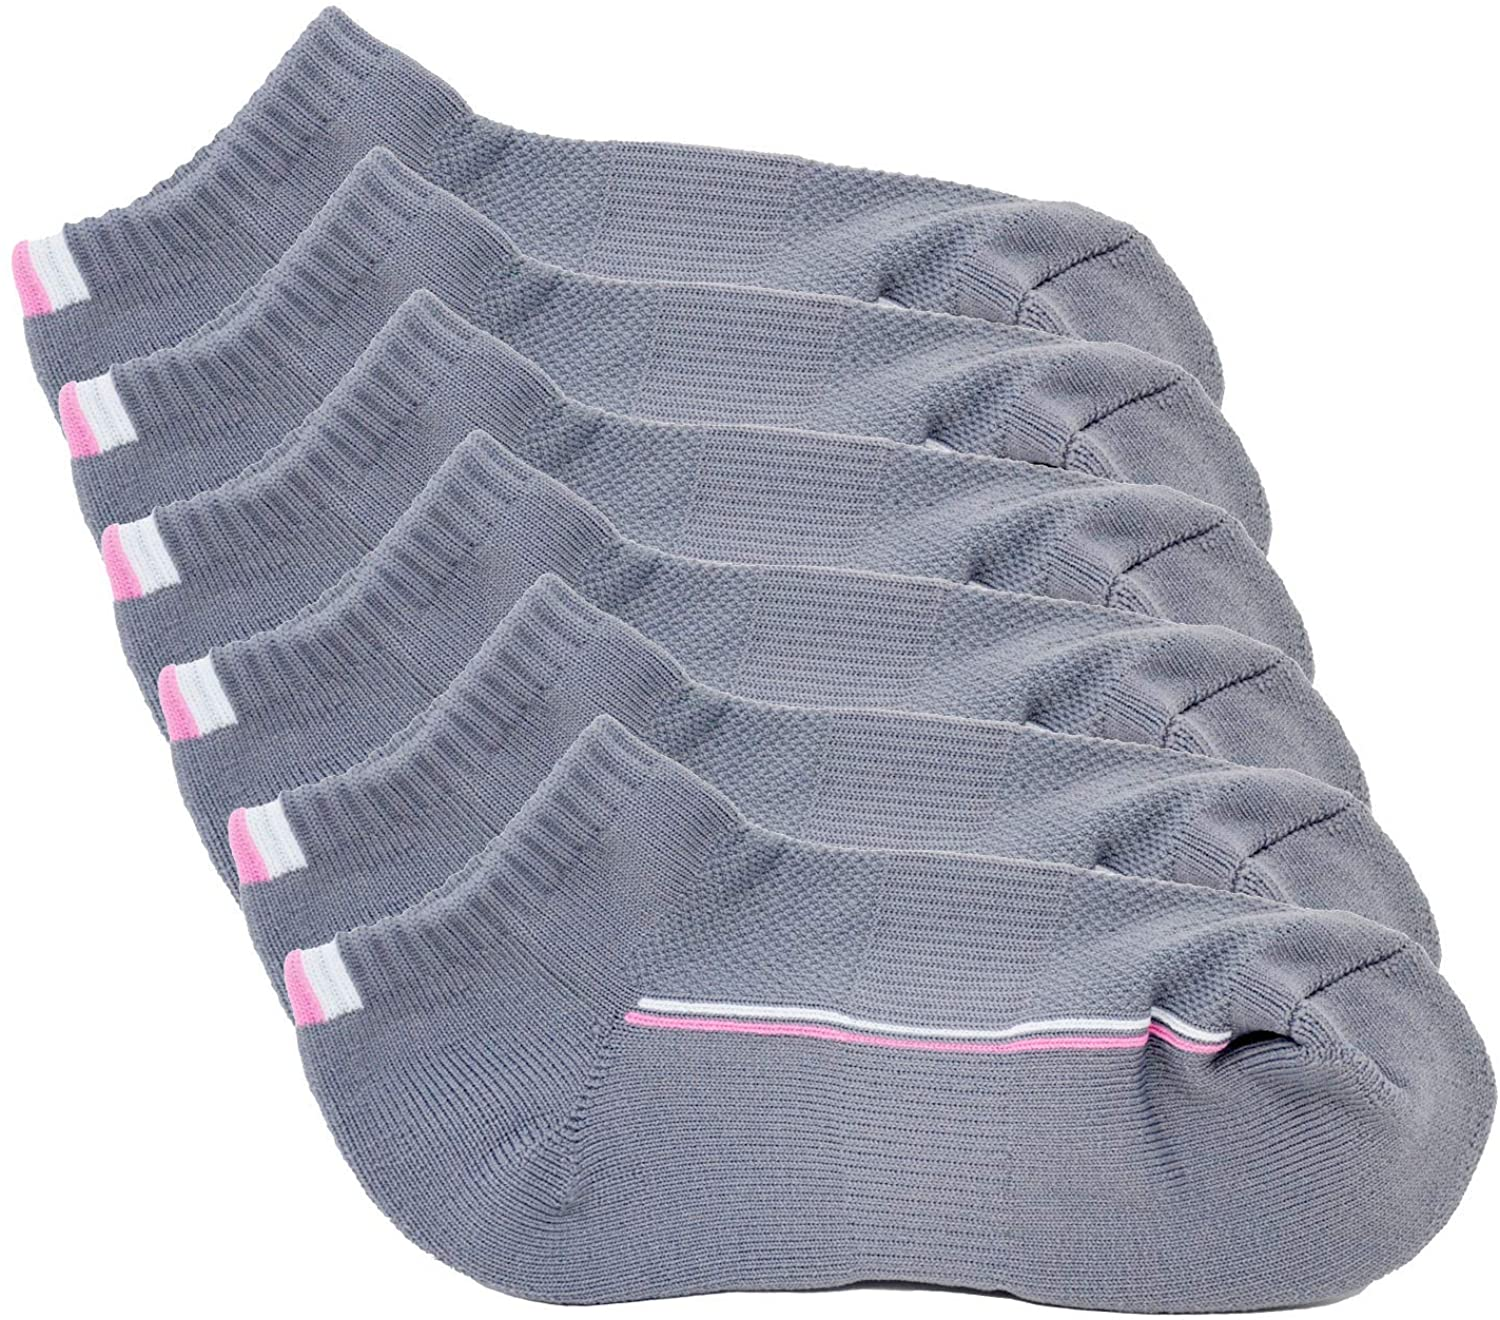 DYNAGEAR Womens Cushioned Low Cut Athletic Socks - Moisture Wicking Performance, Pink+White Line Design (Pack of 6 Pairs) – Grey, Medium